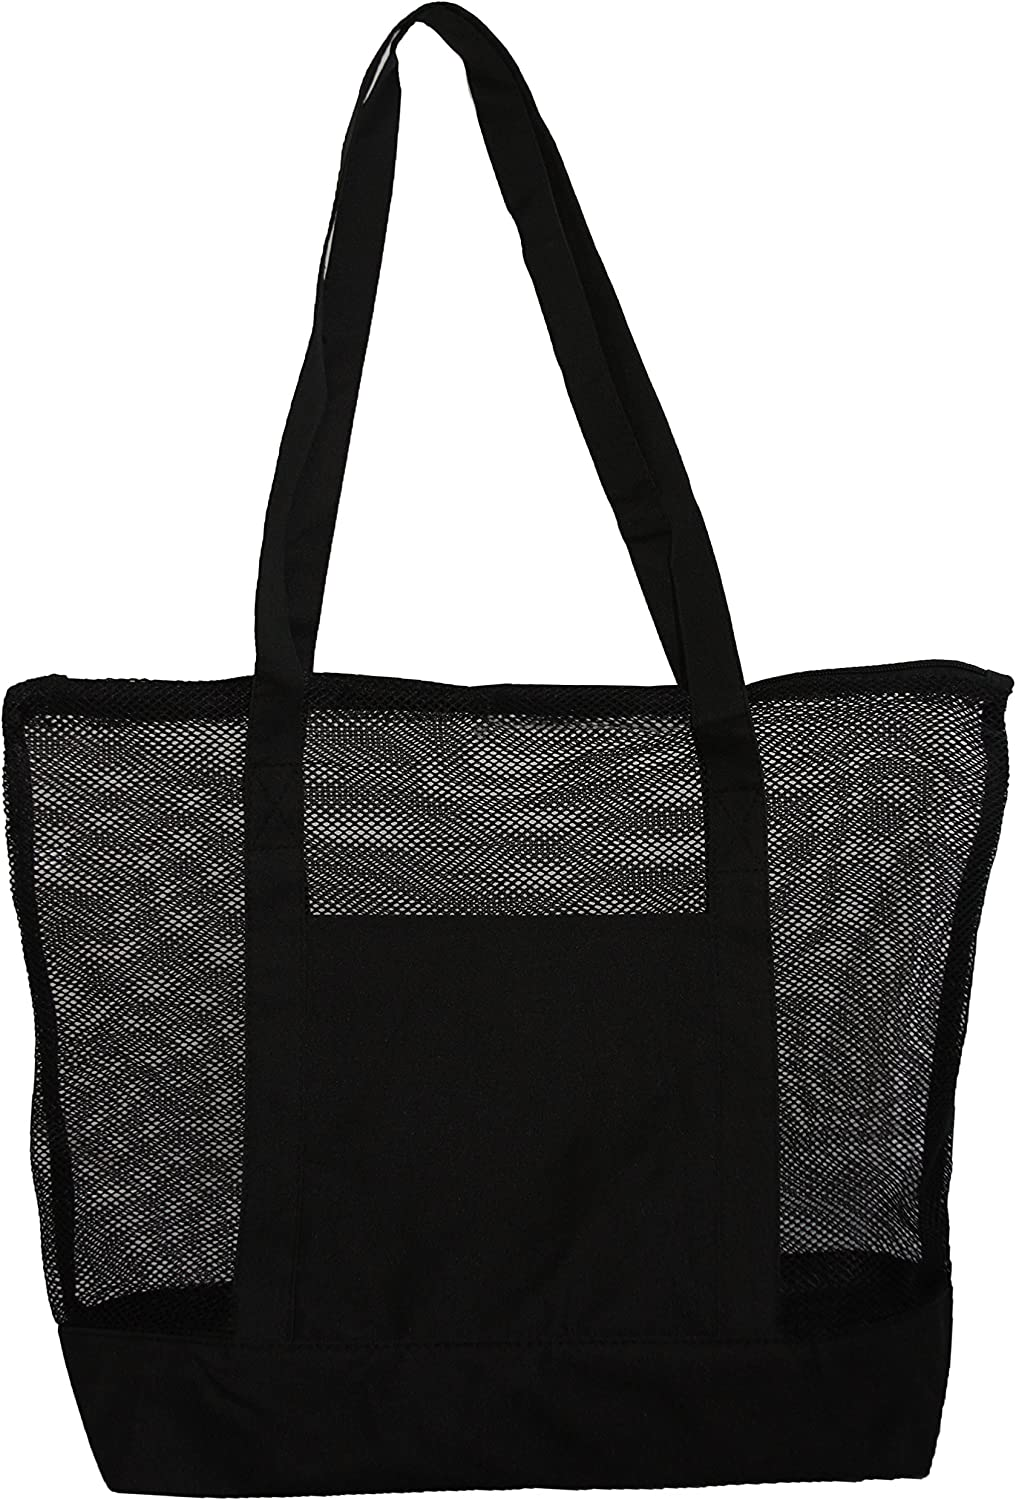 Bodek And Rhodes 80279300 1100 Gemline Select Zippered Tote Black One